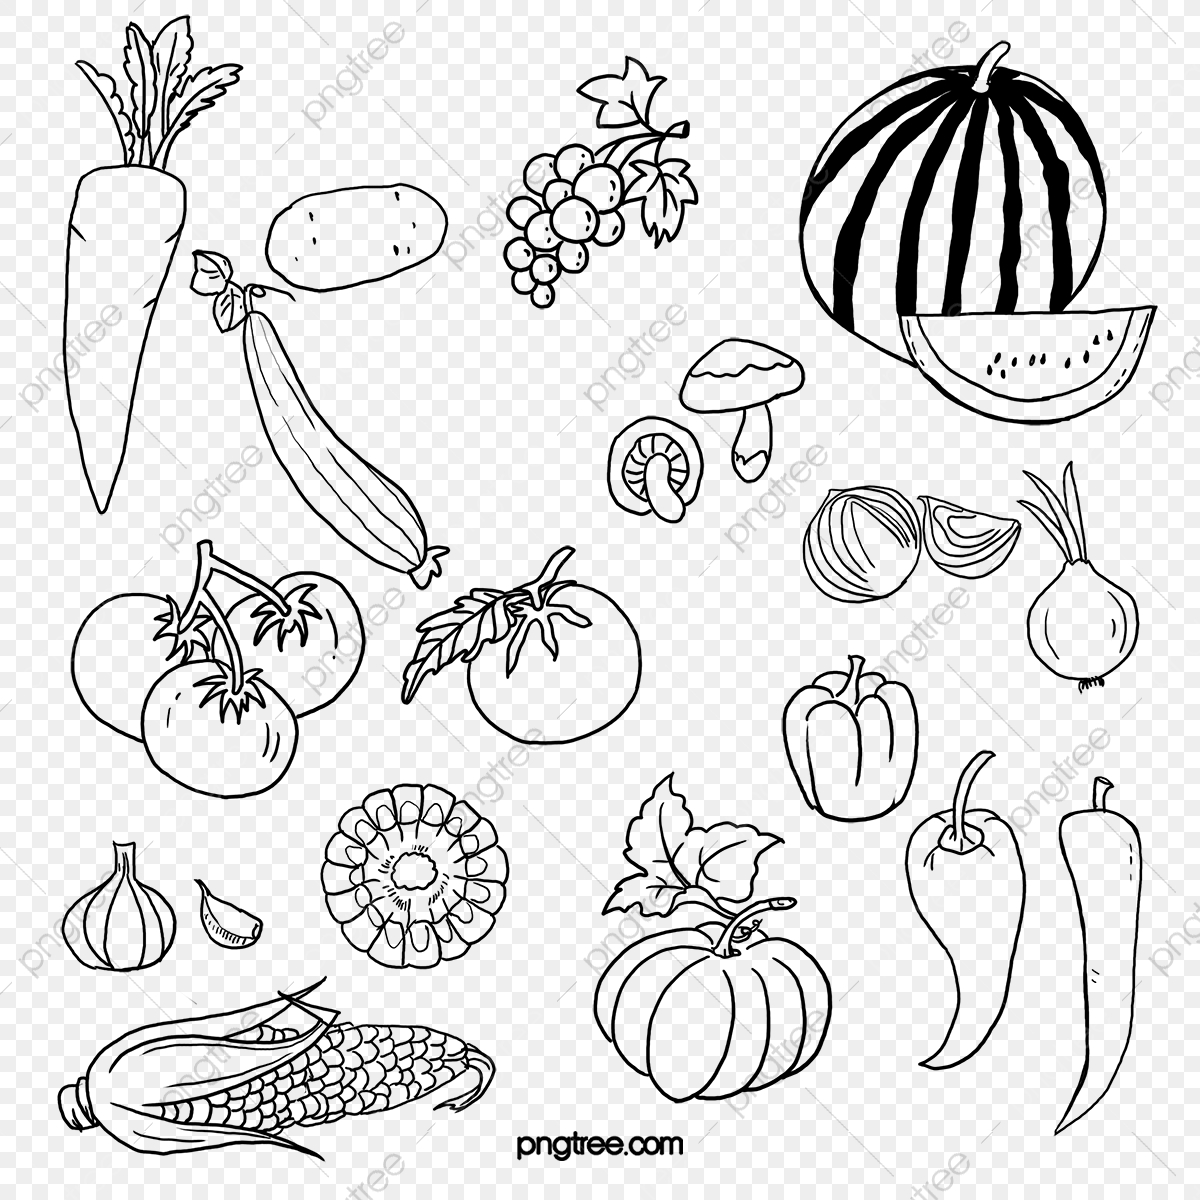 Black And White Fruits And Vegetables Black Vector Artwork Watermelon Png Transparent Clipart Image And Psd File For Free Download